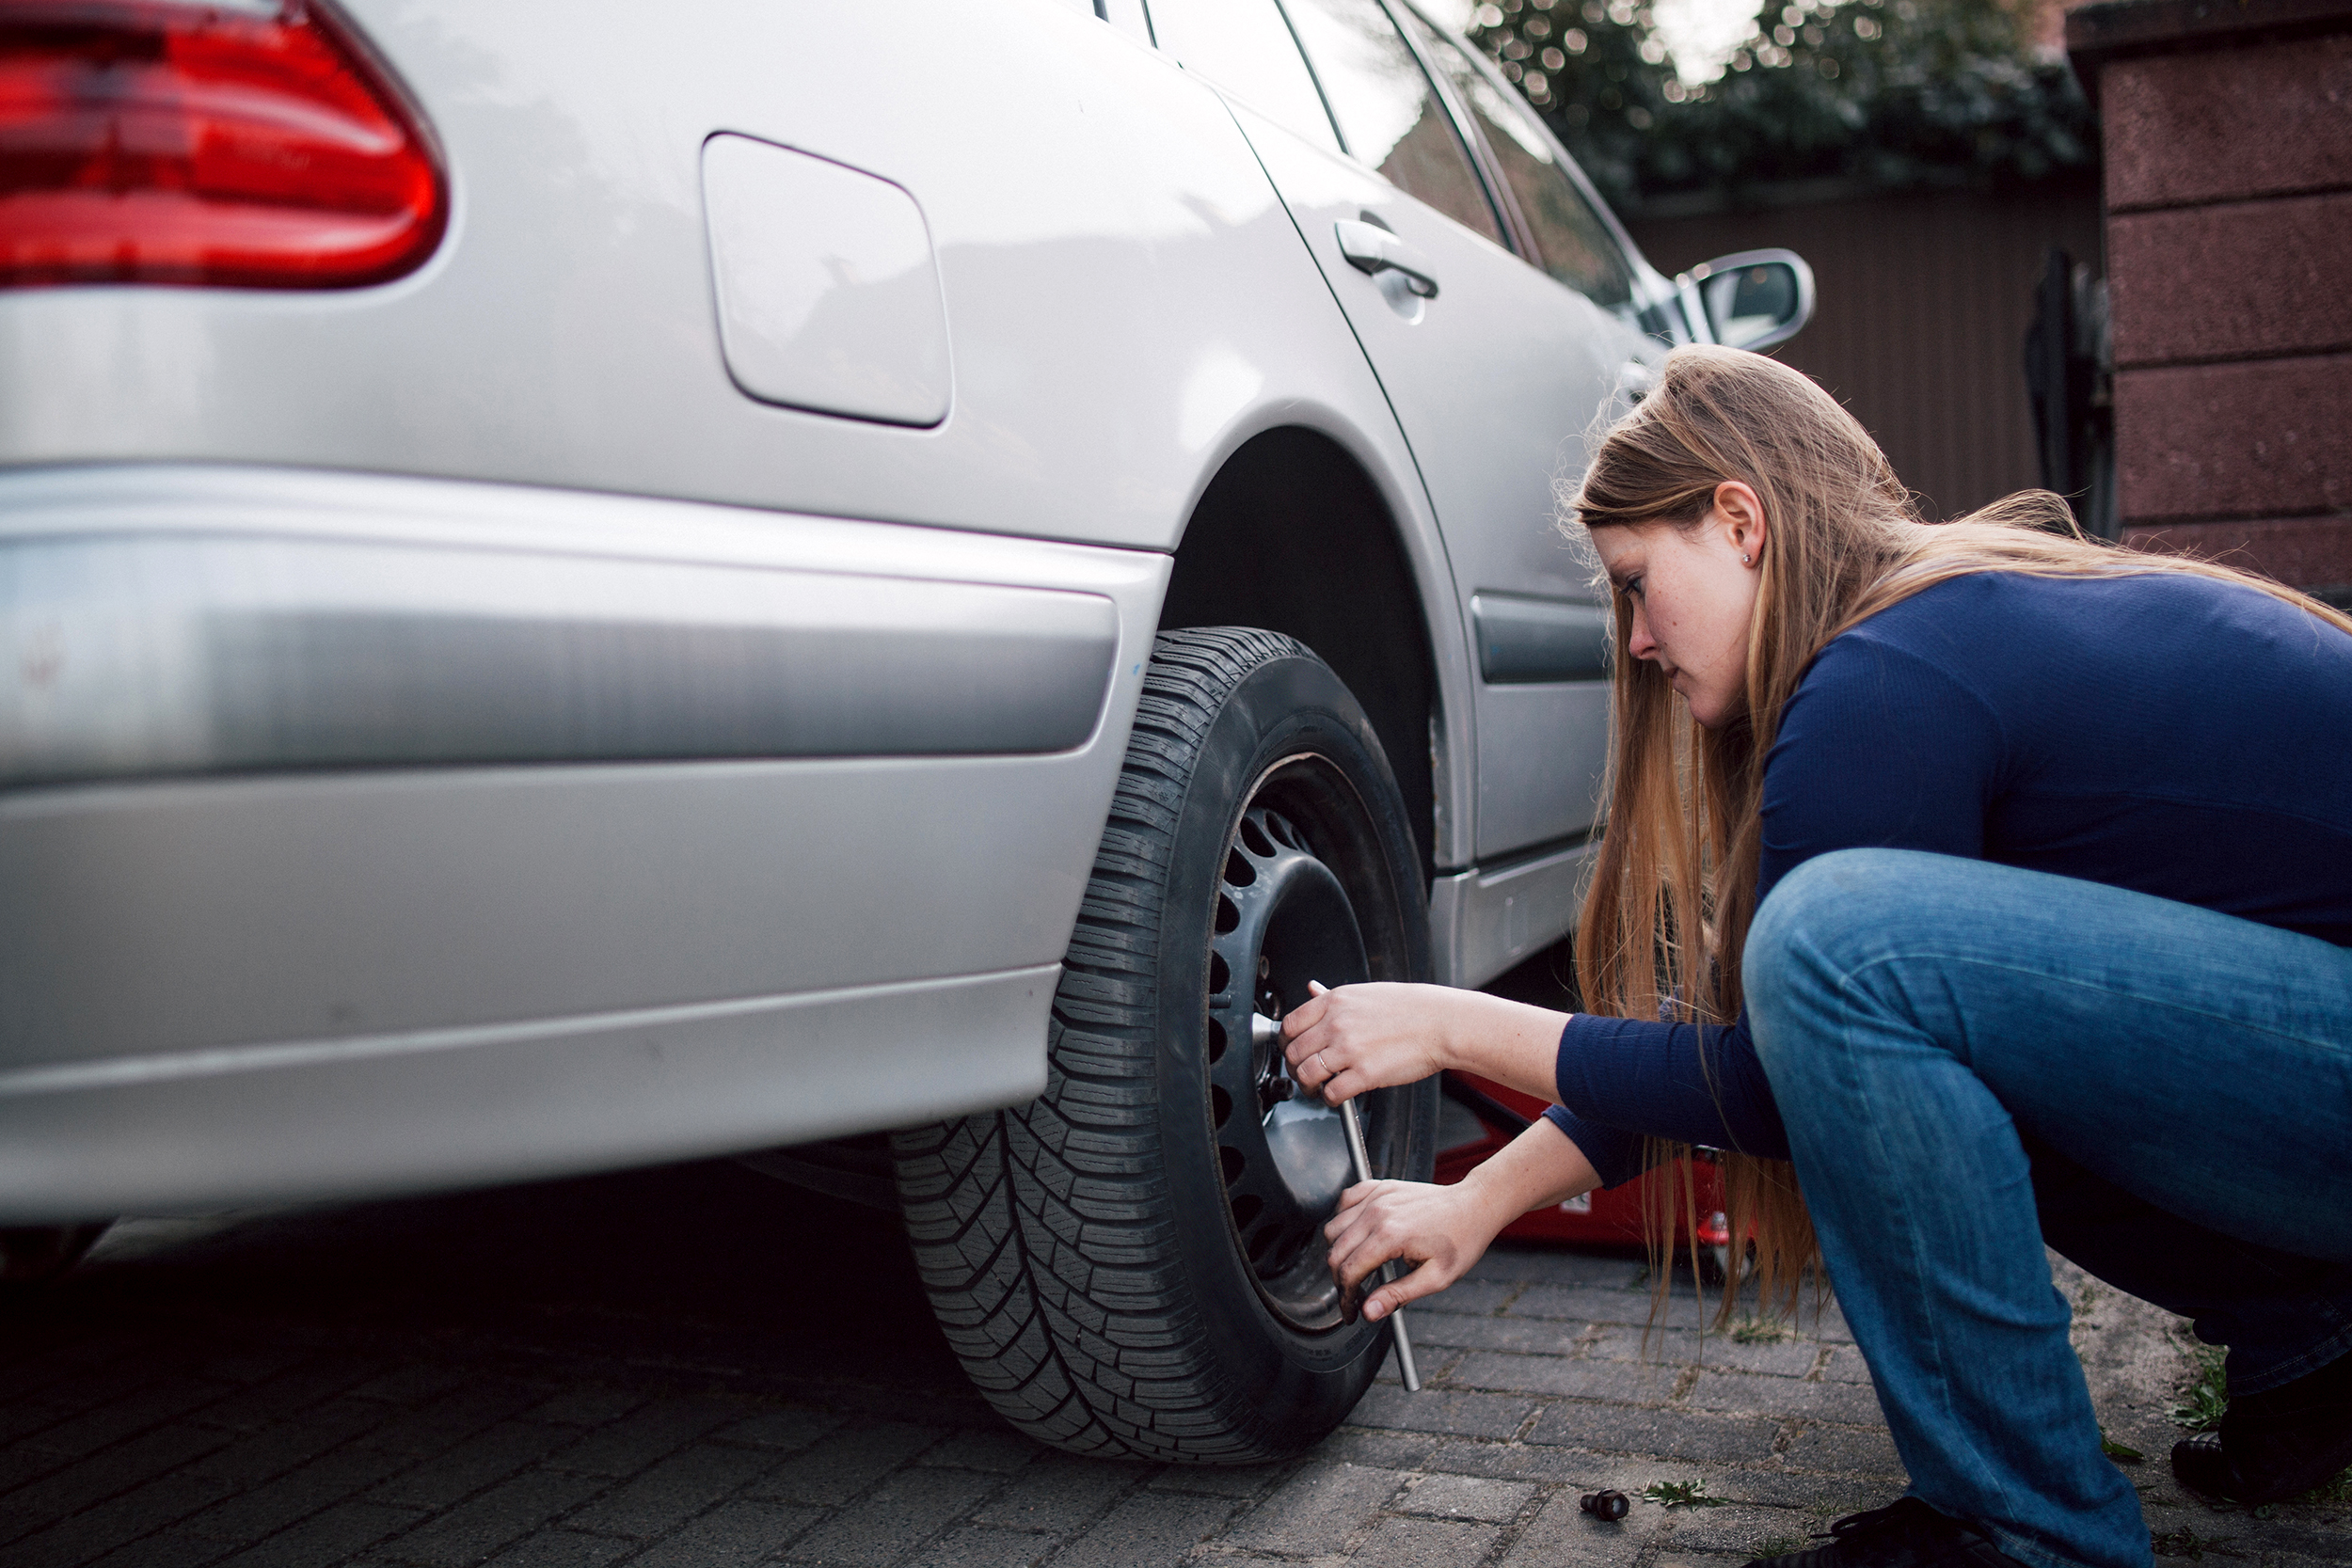 60 percent of people can't change a flat tire - but most can